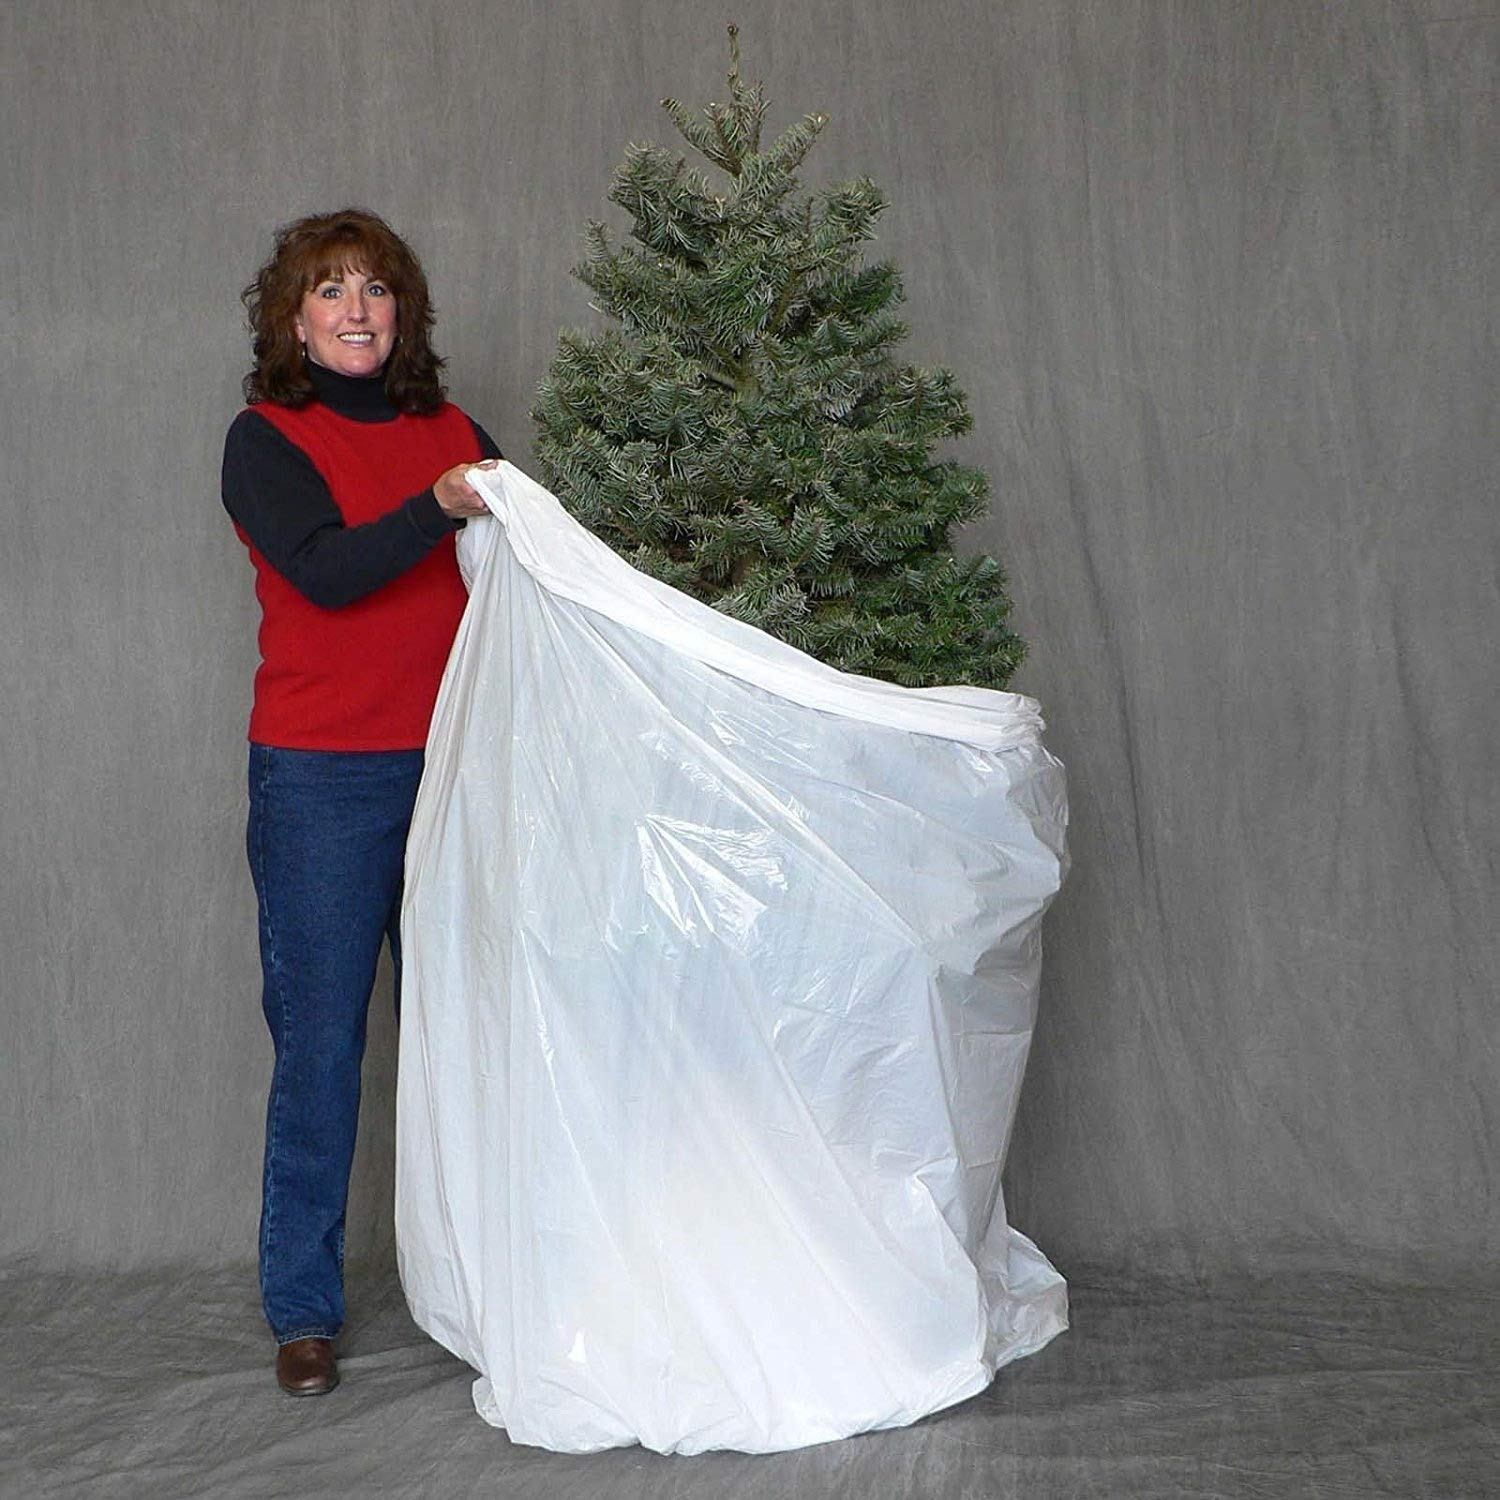 Disposing Of Christmas Trees: Must Read Tips For Cutting Down A Christmas Tree (and